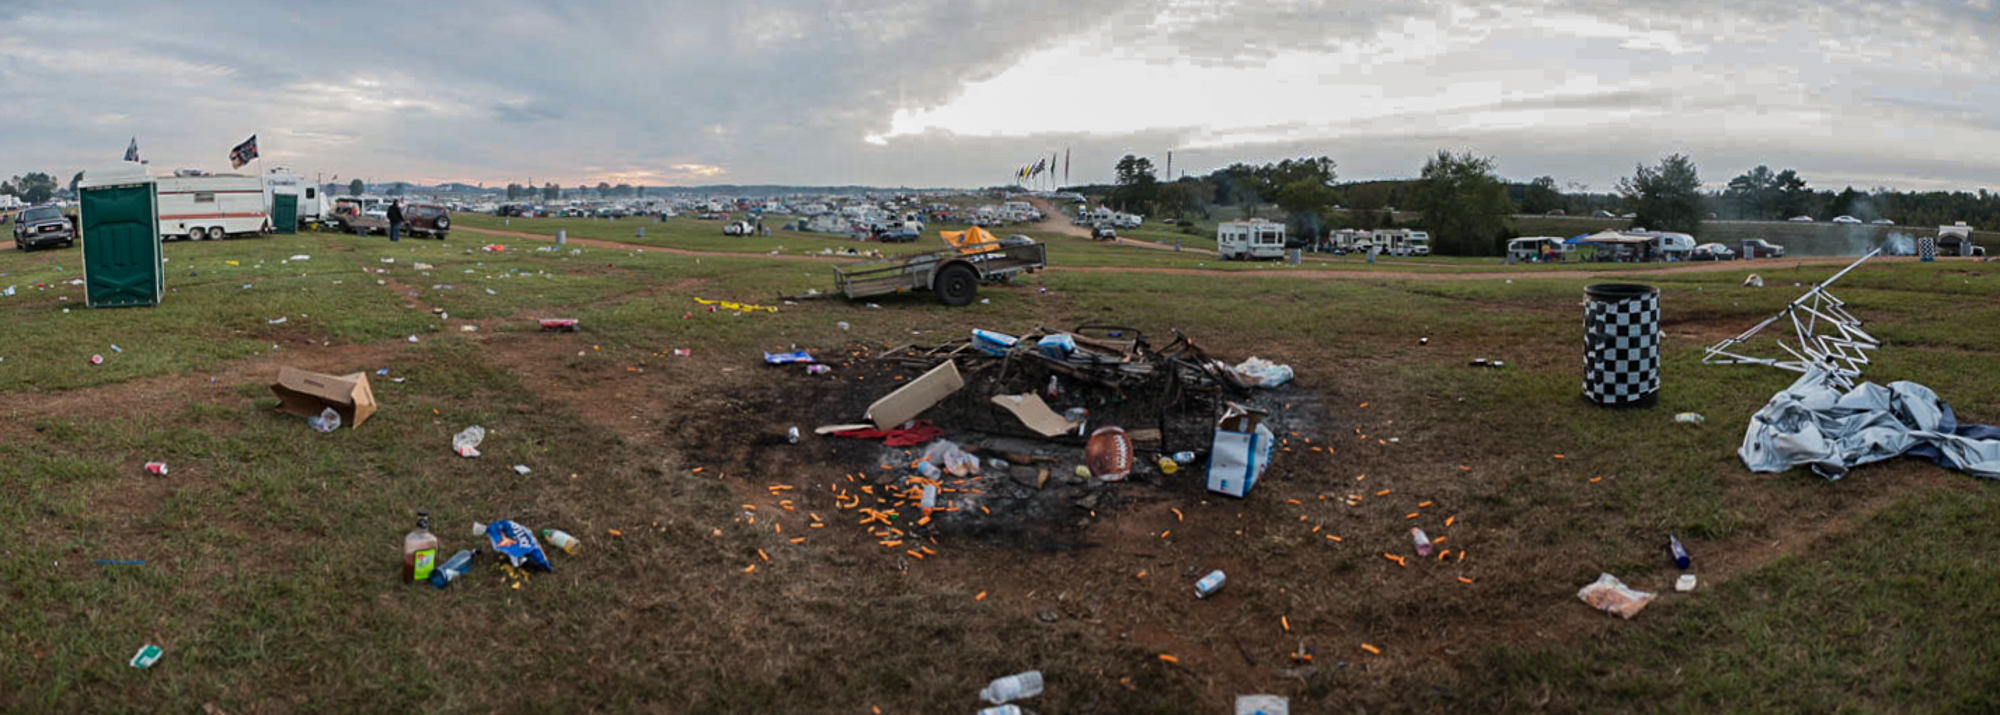 Aftermath, Talladega, AL